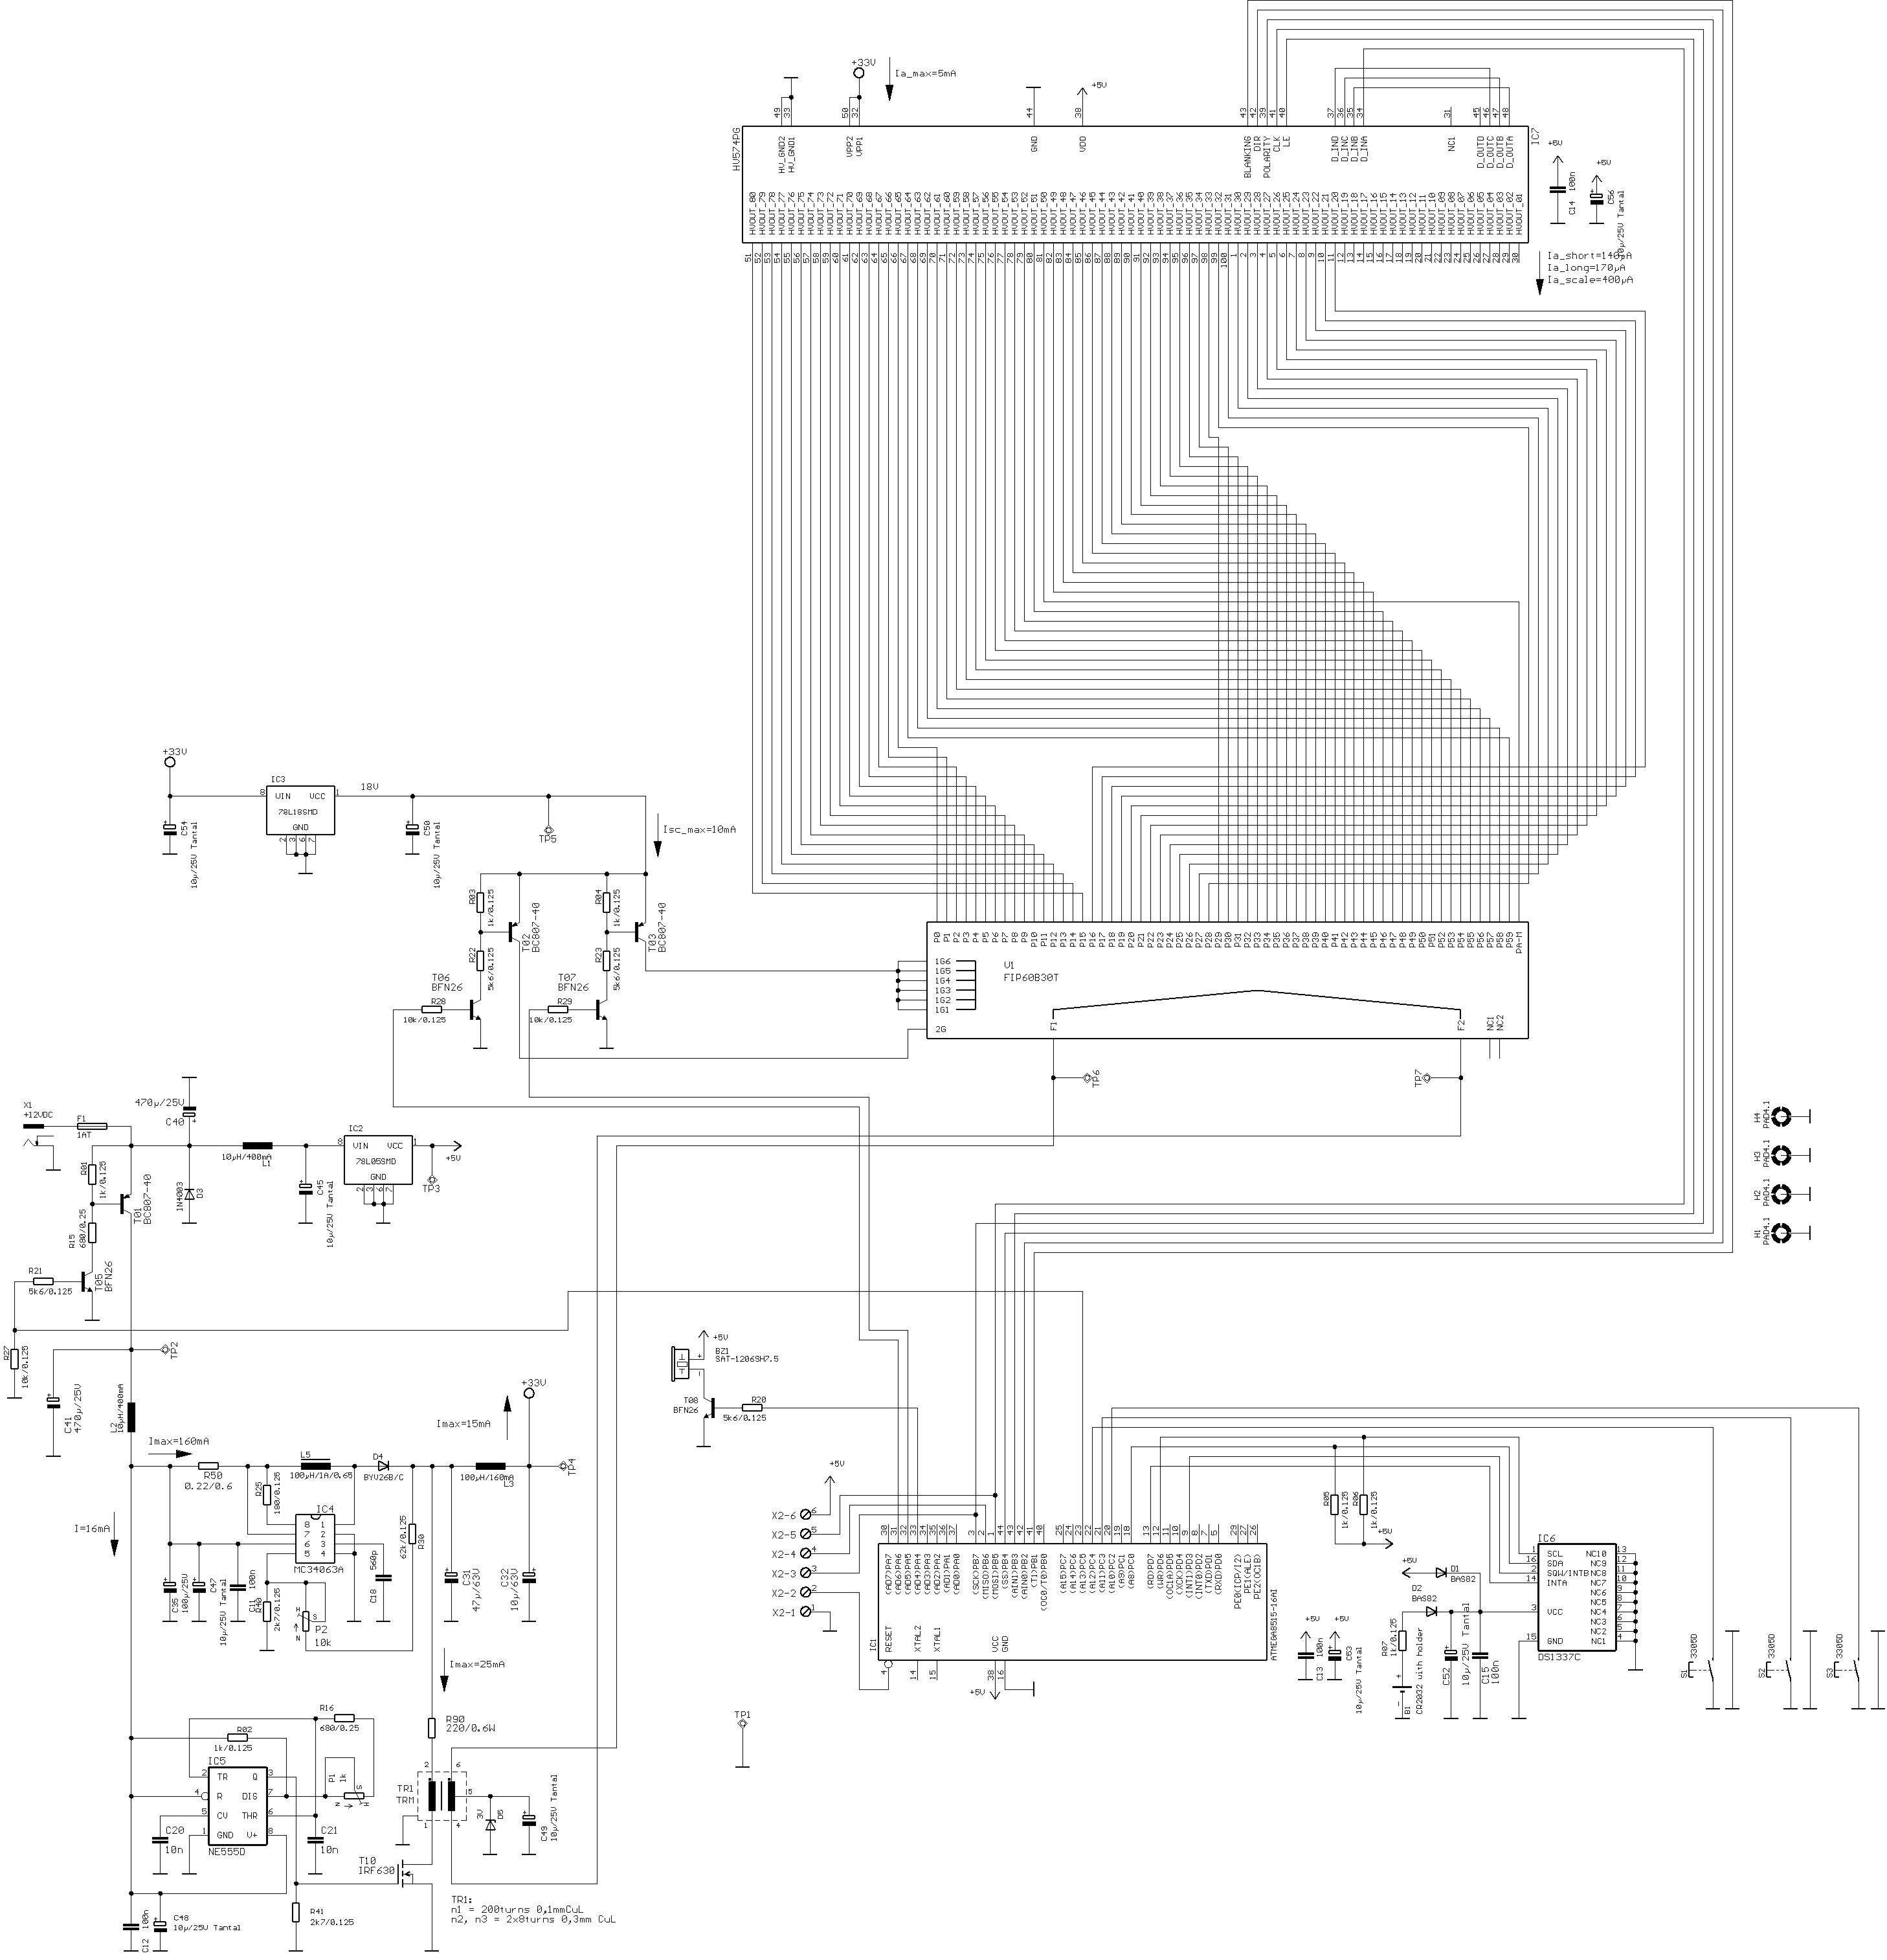 Results Page 357 About 6 Channel Ir Remote With Pic 16f84 Electronic Mosquito Repellent Circuit Diagram Using Ic 555 Nocrotec Fip Clock Fip60b30t Vfd Display